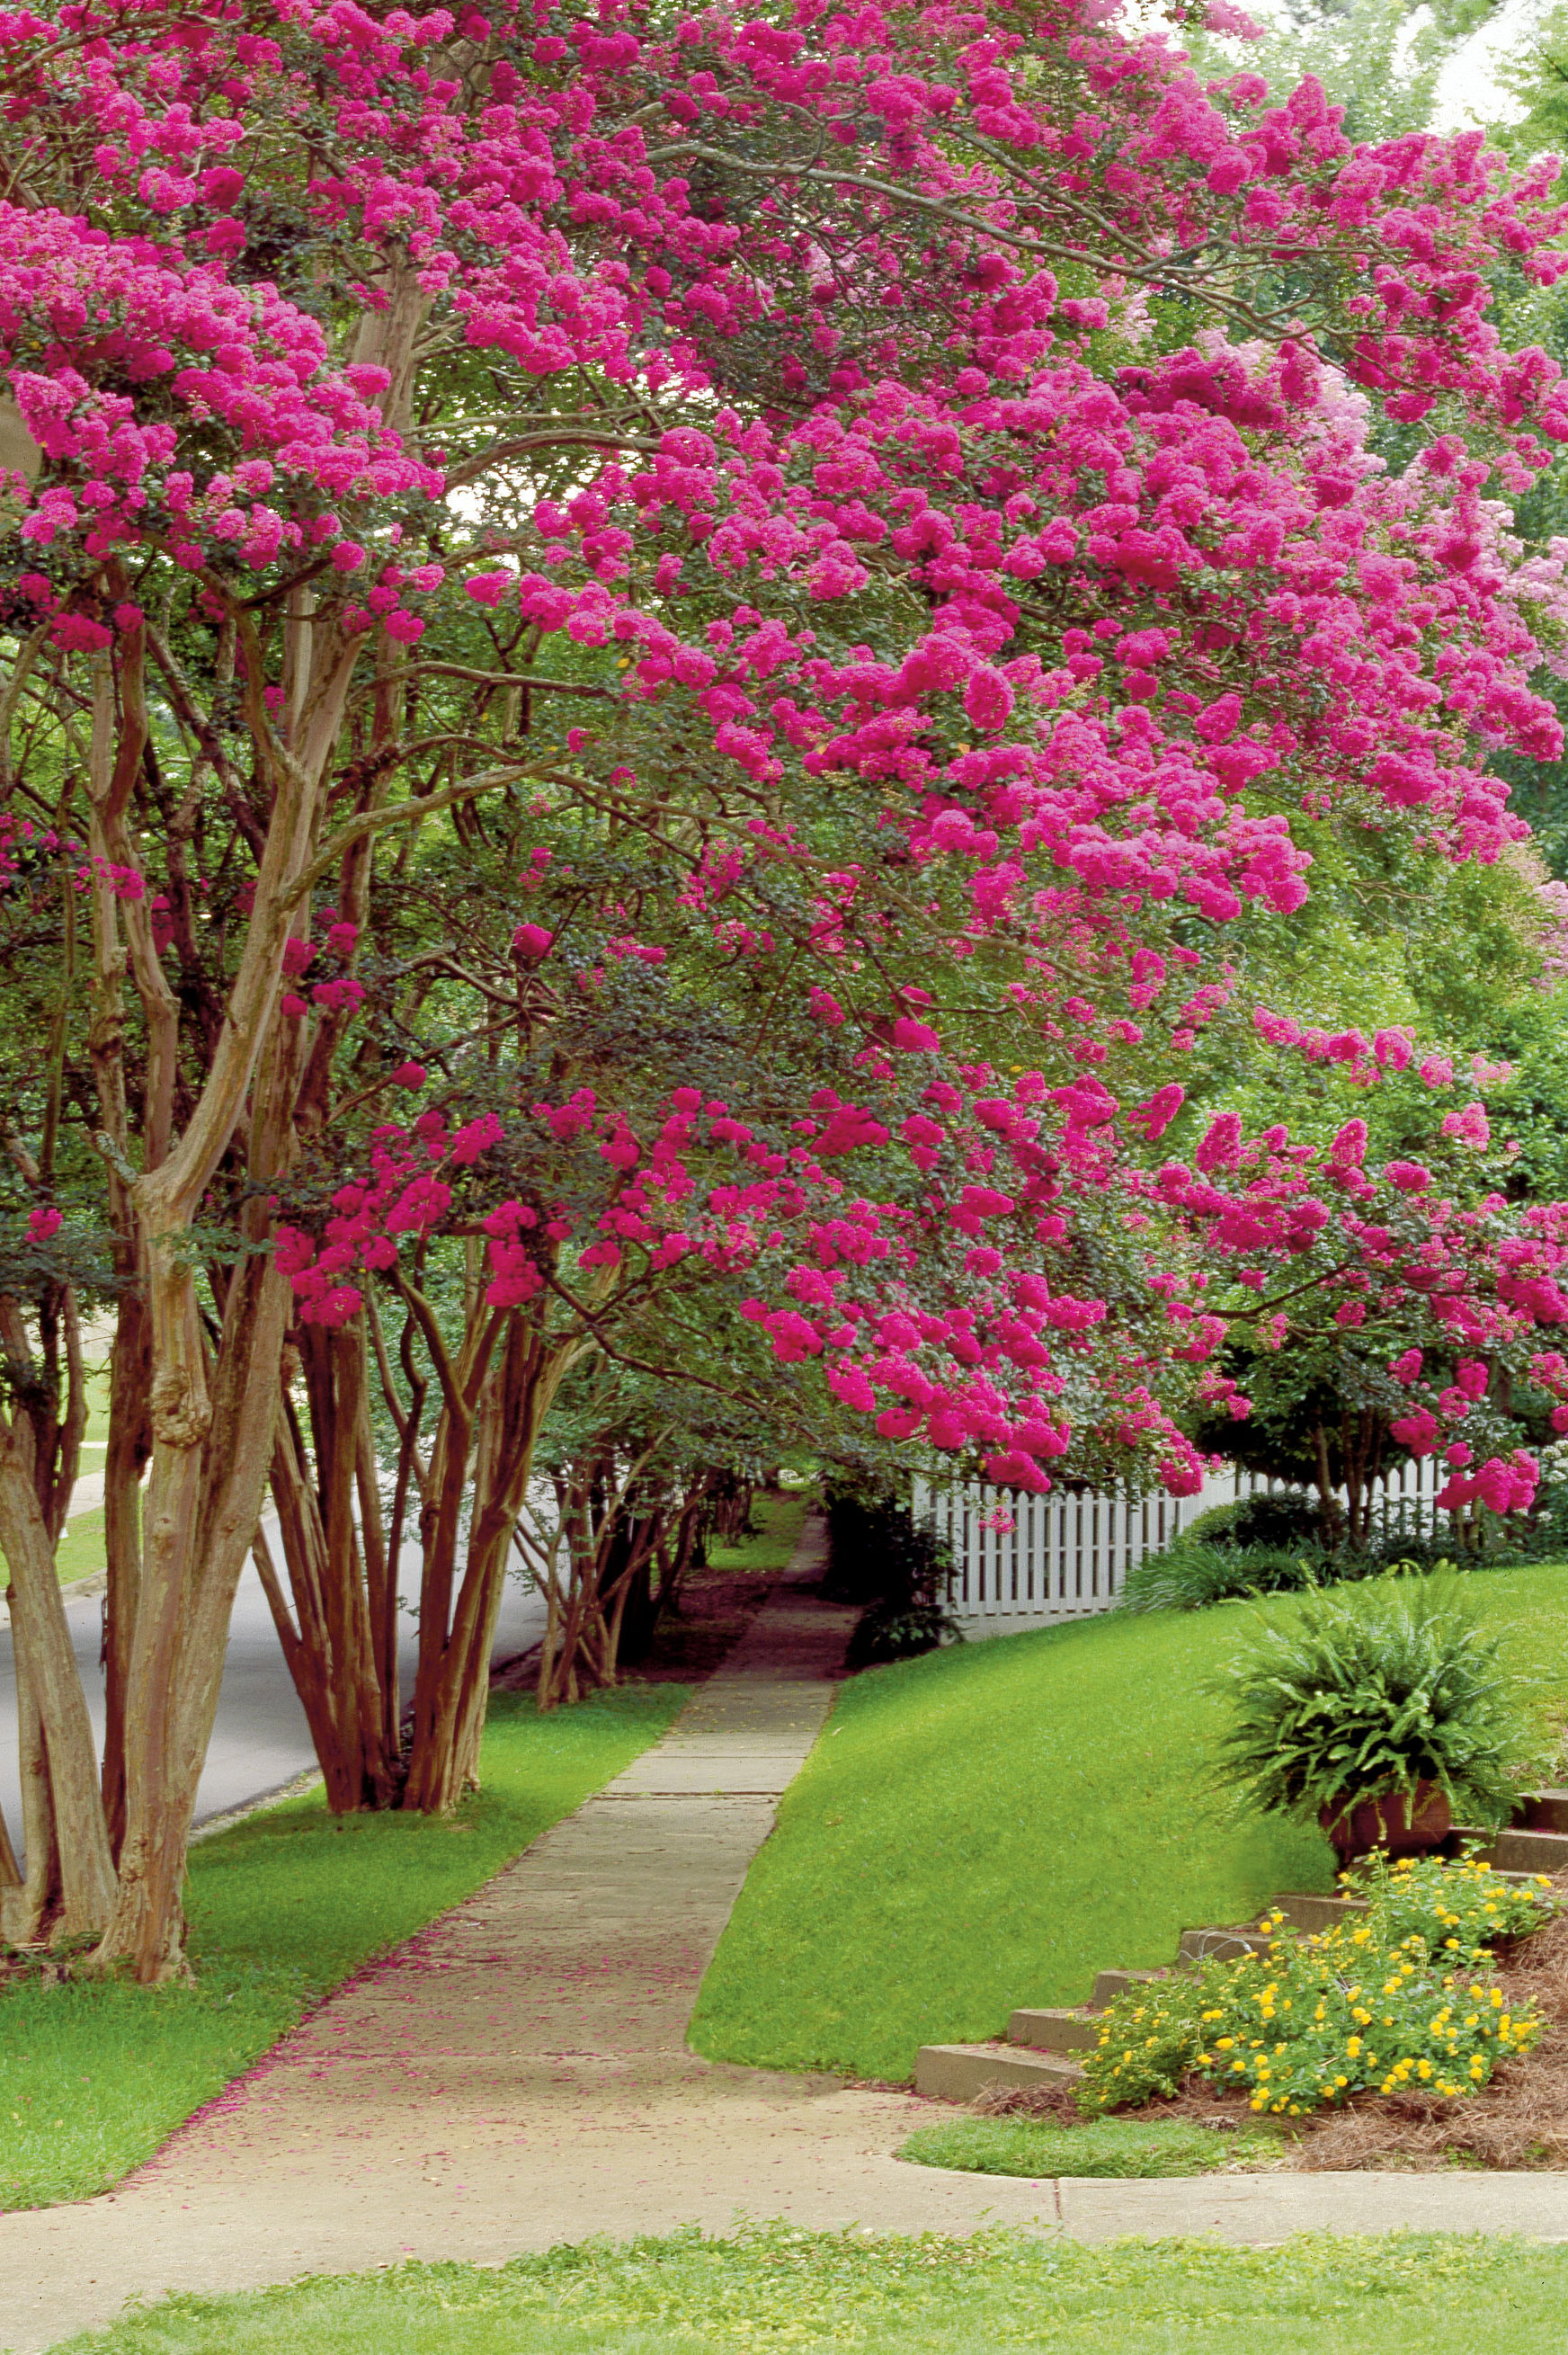 A Brief History of the Crepe Myrtle